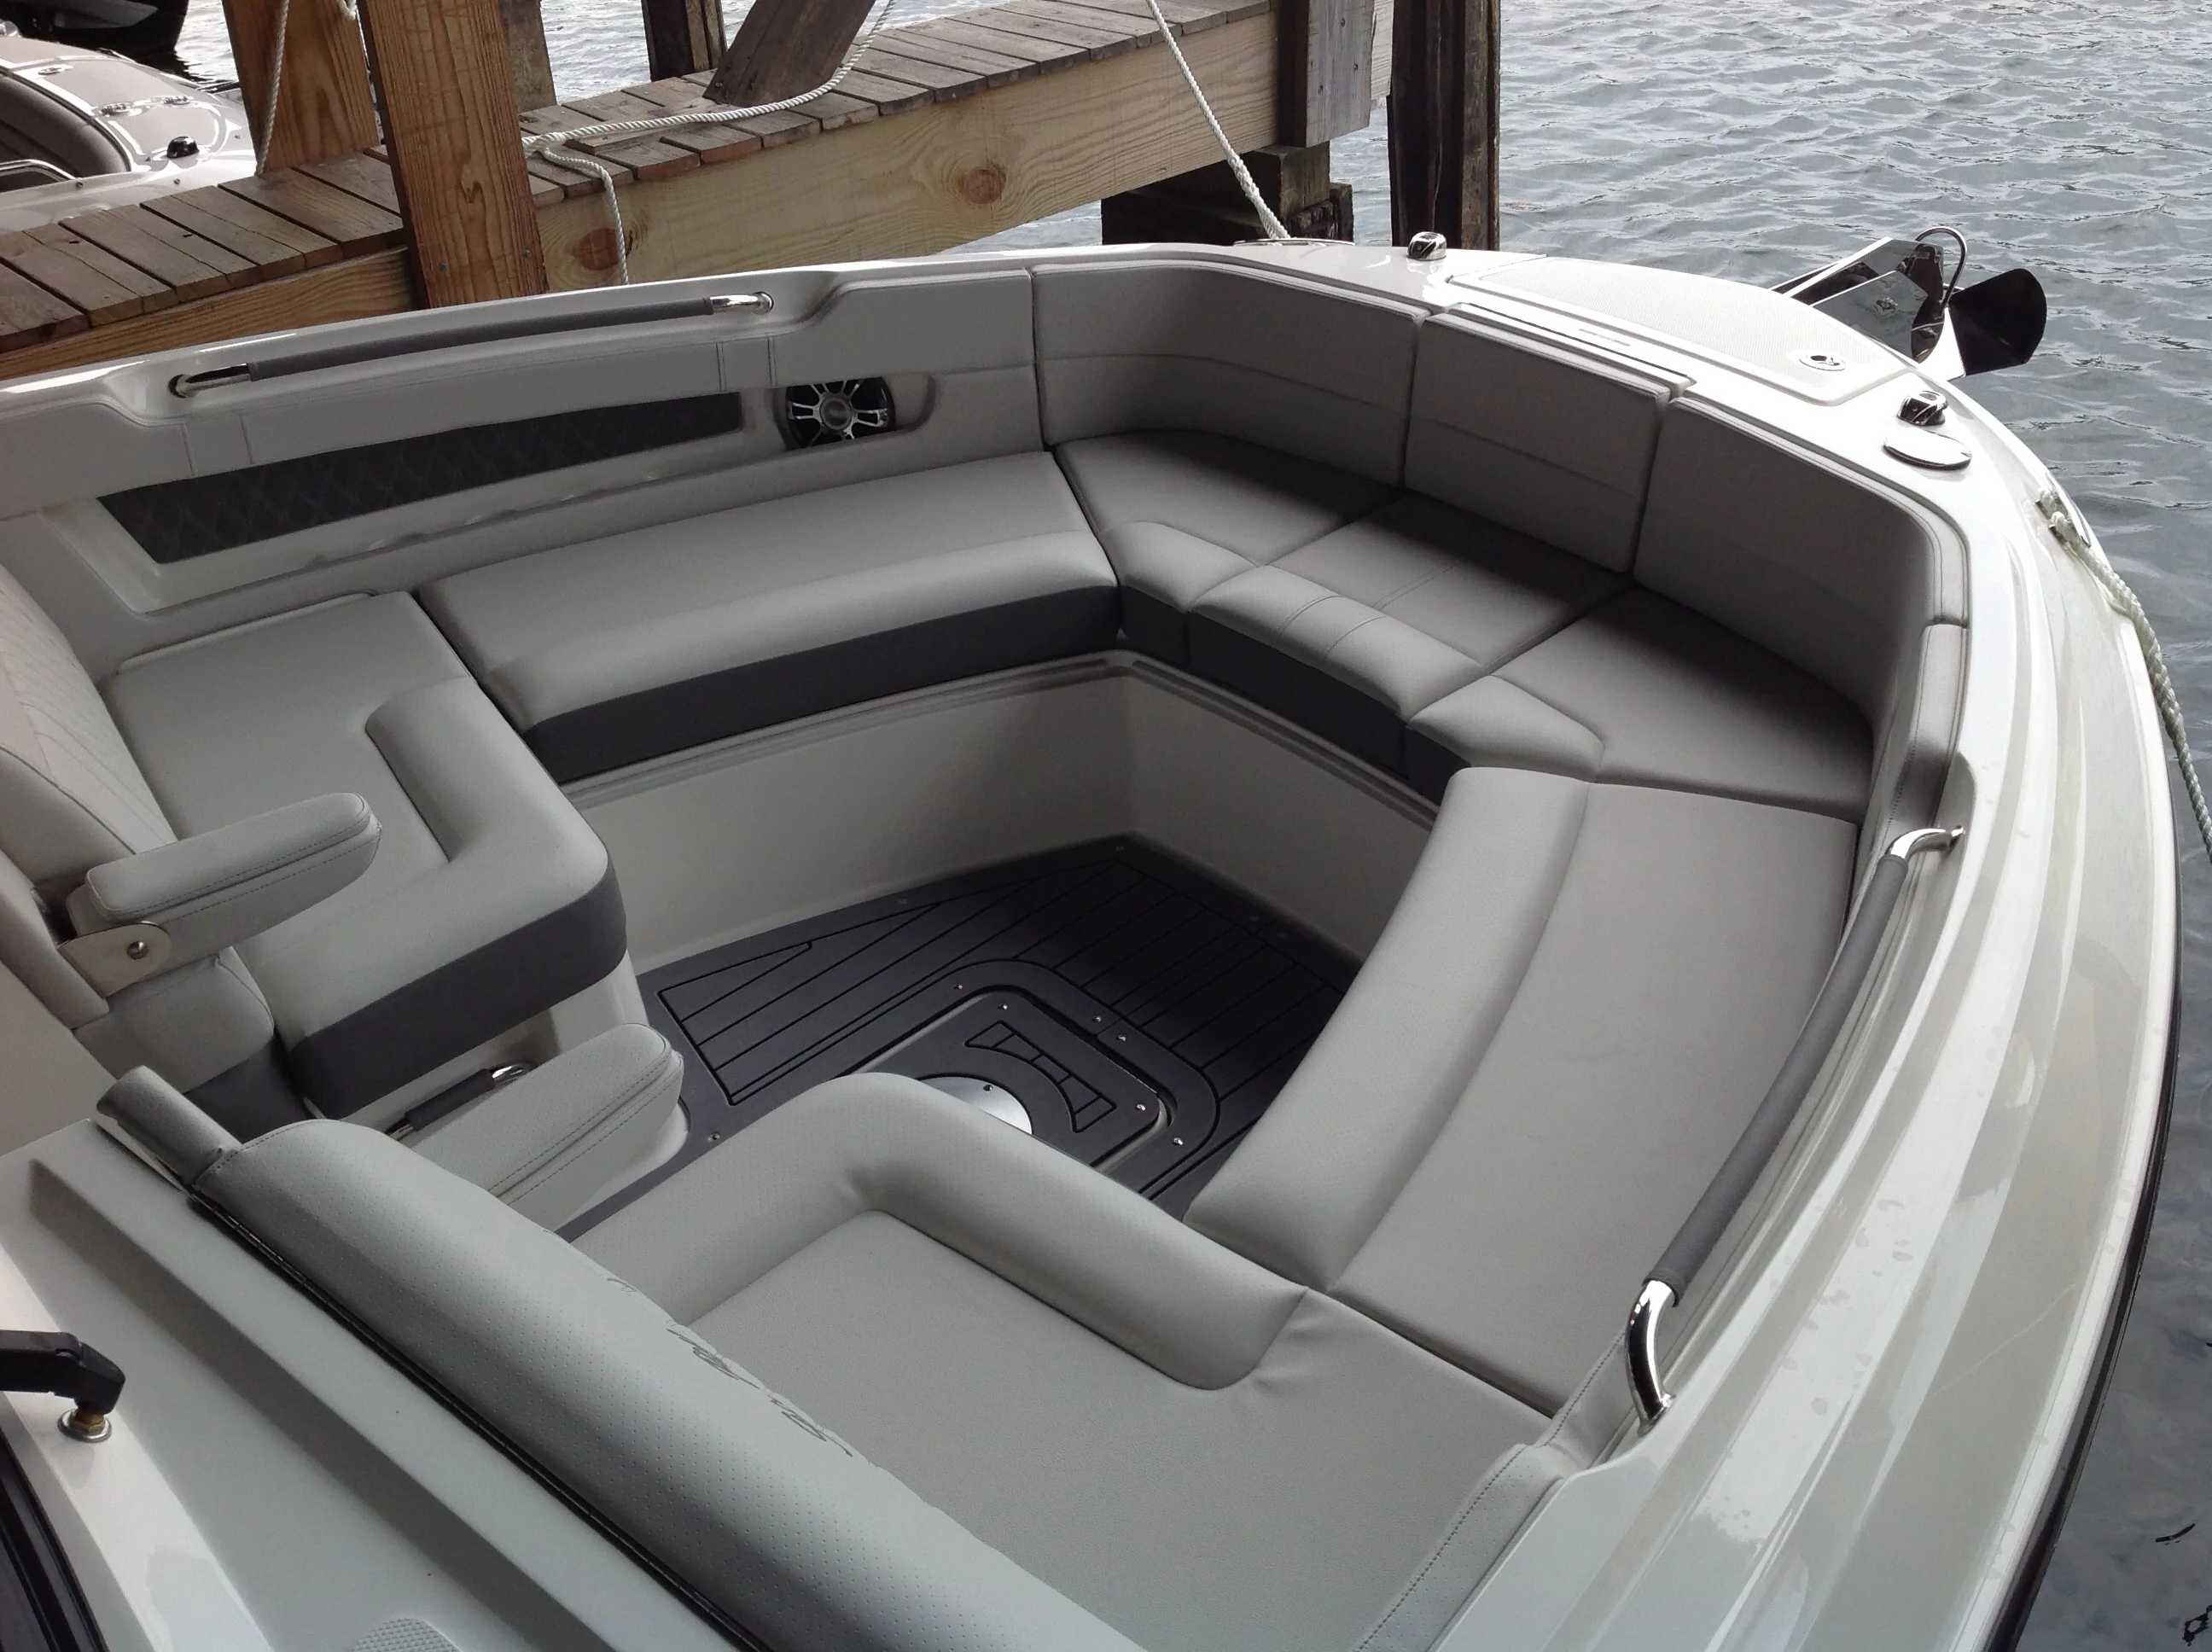 2021 Sea Ray boat for sale, model of the boat is 310 SLX & Image # 4 of 20